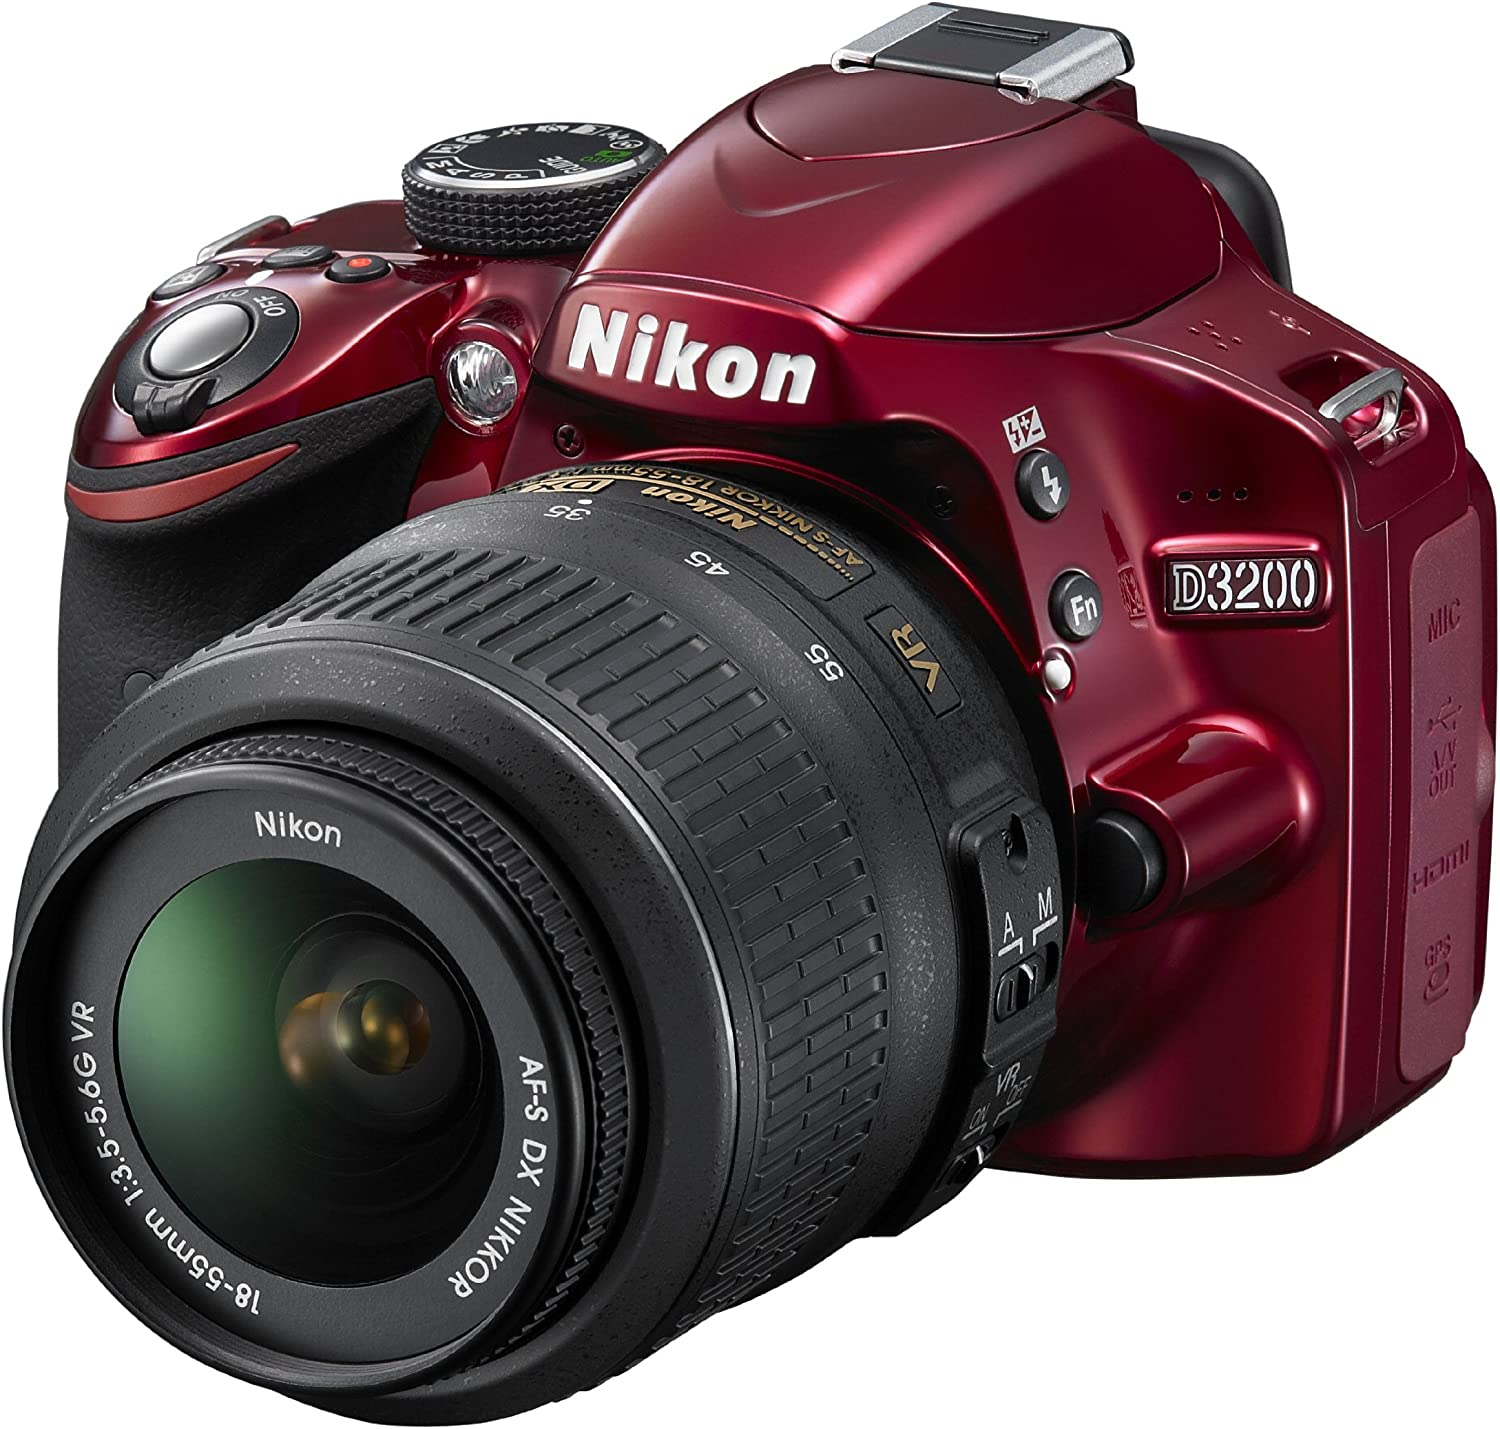 Amazon.com: Nikon D3200 Digital SLR.: Camera & Photo